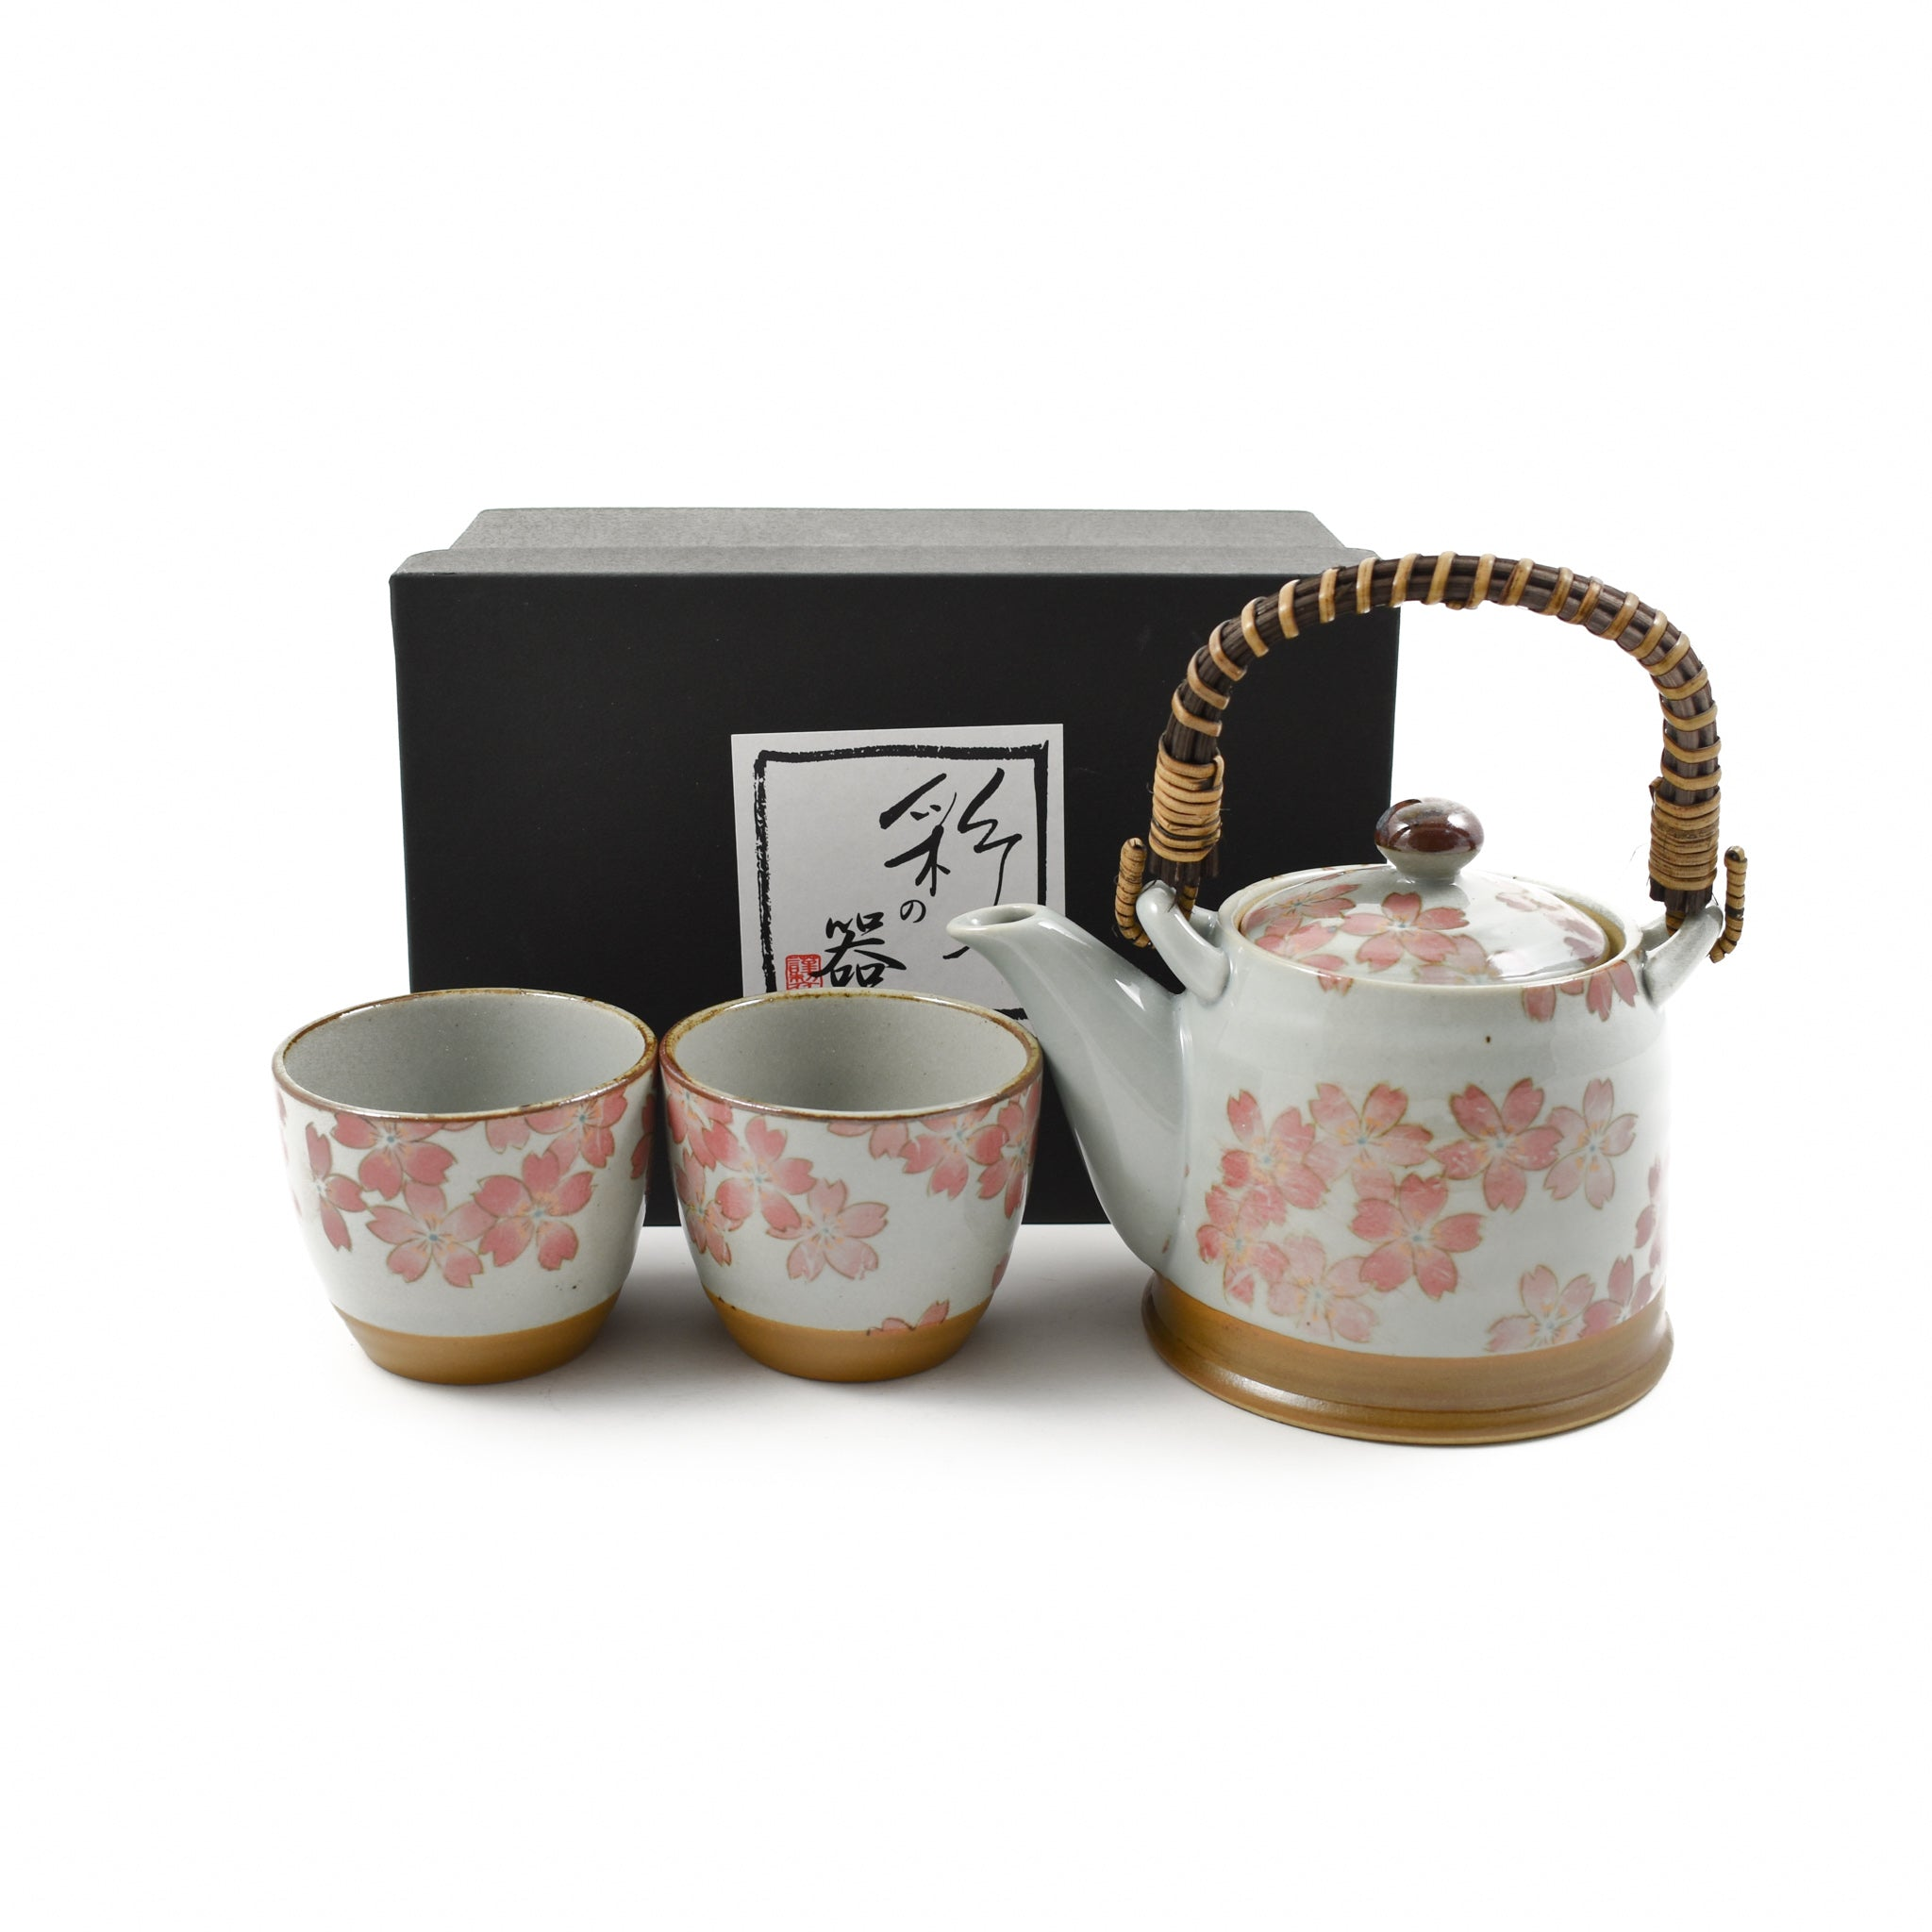 Kiji Stoneware & Ceramics Sakura Blossom Tea Set For Two Tableware Japanese Tableware Japanese Food